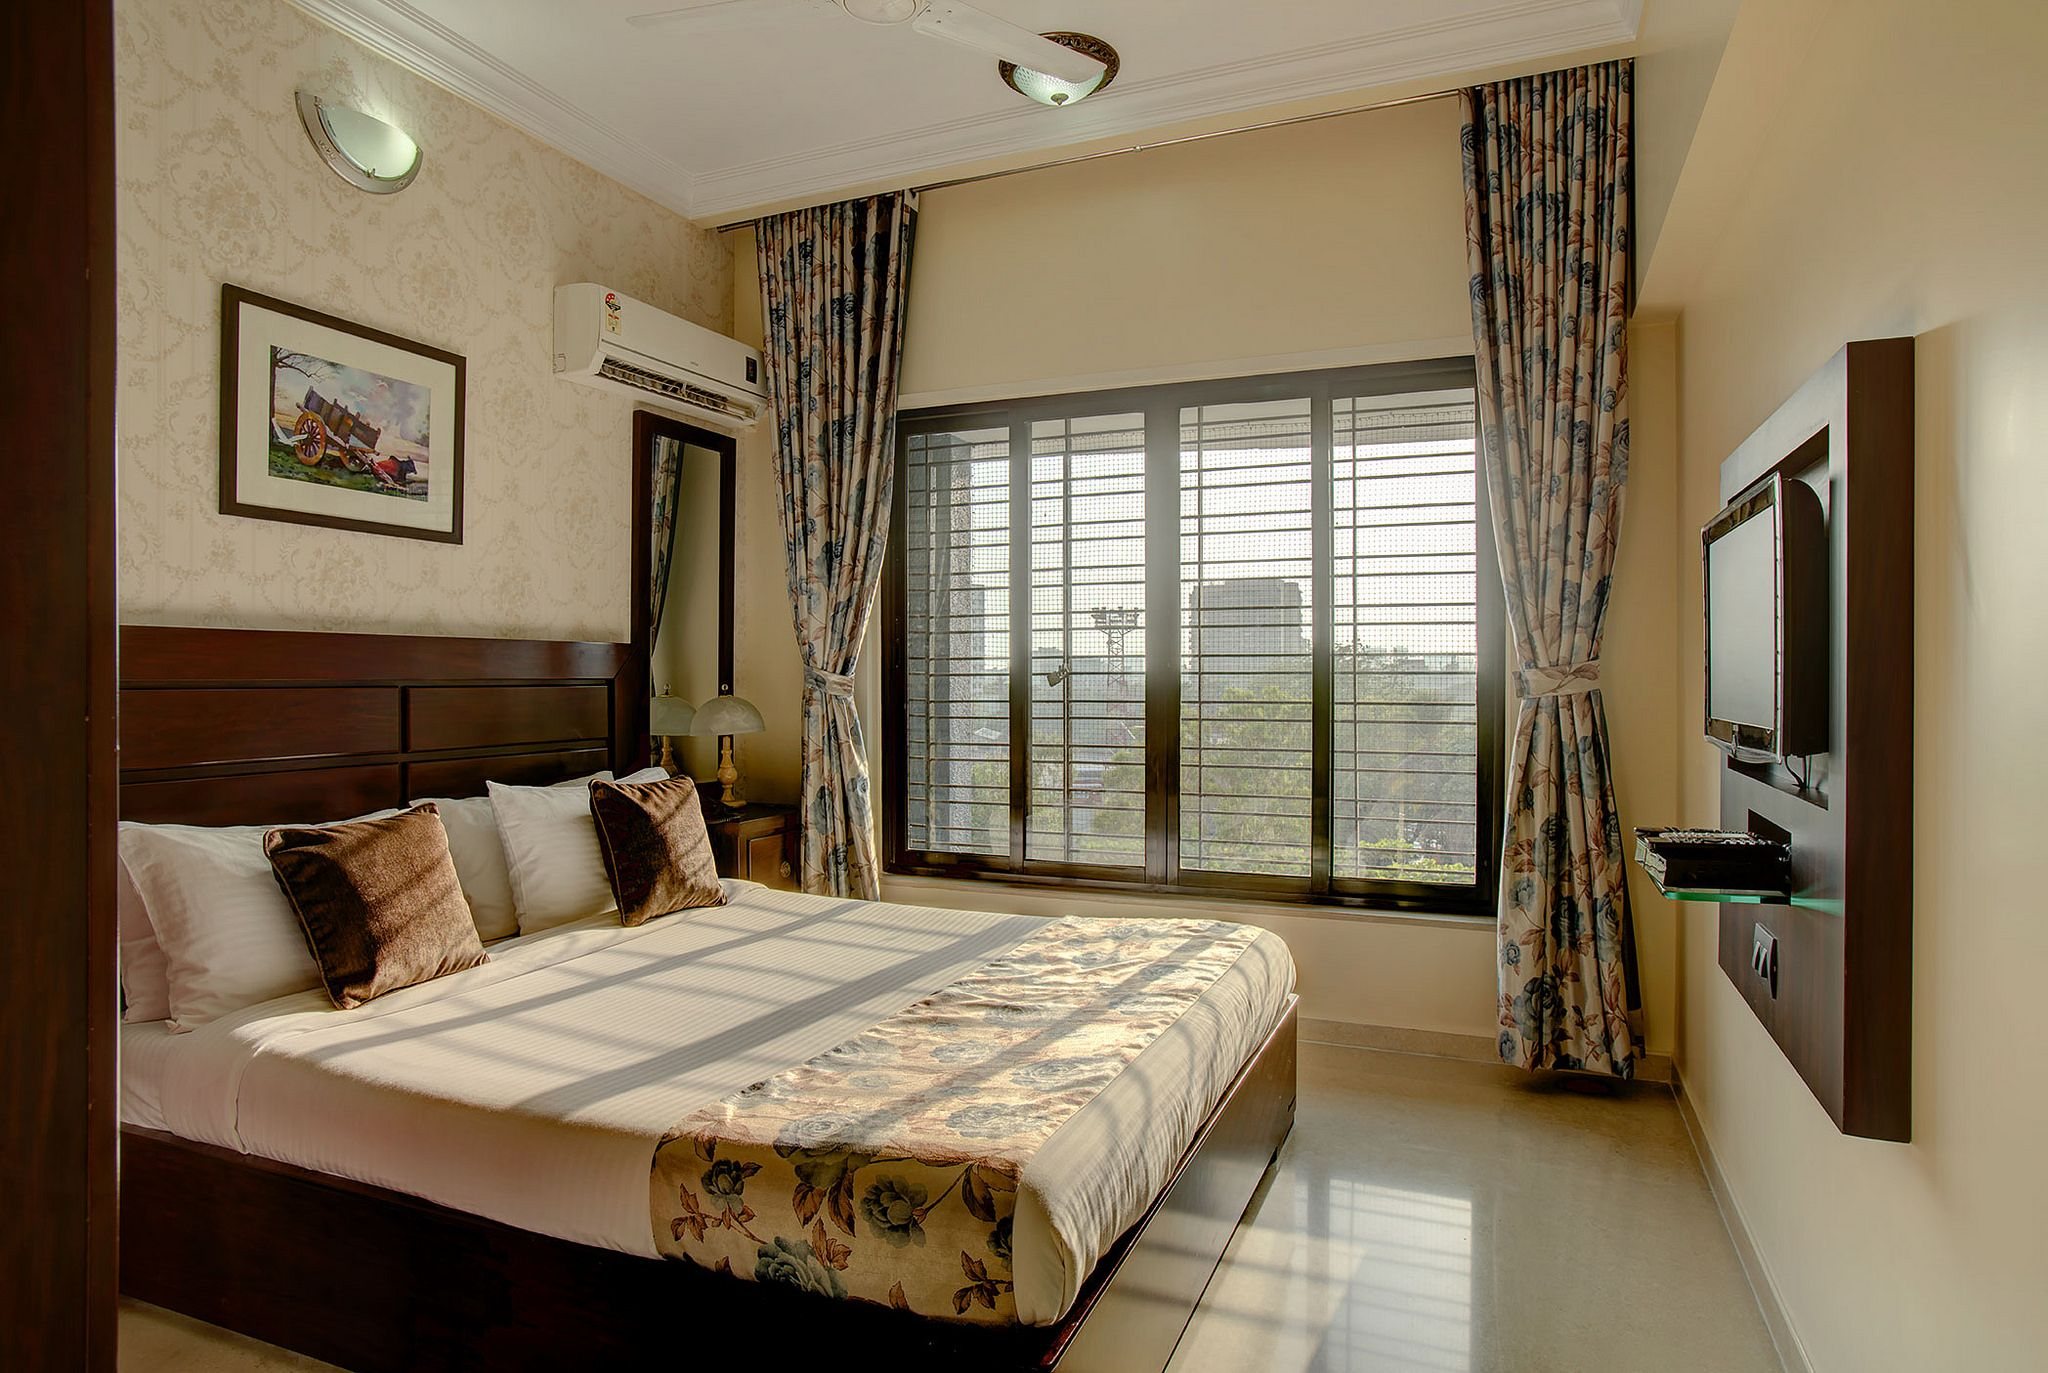 ecc77147471e6edd001ec7f819764296 - Gardens Apartments Fully Furnished And Serviced Apartments